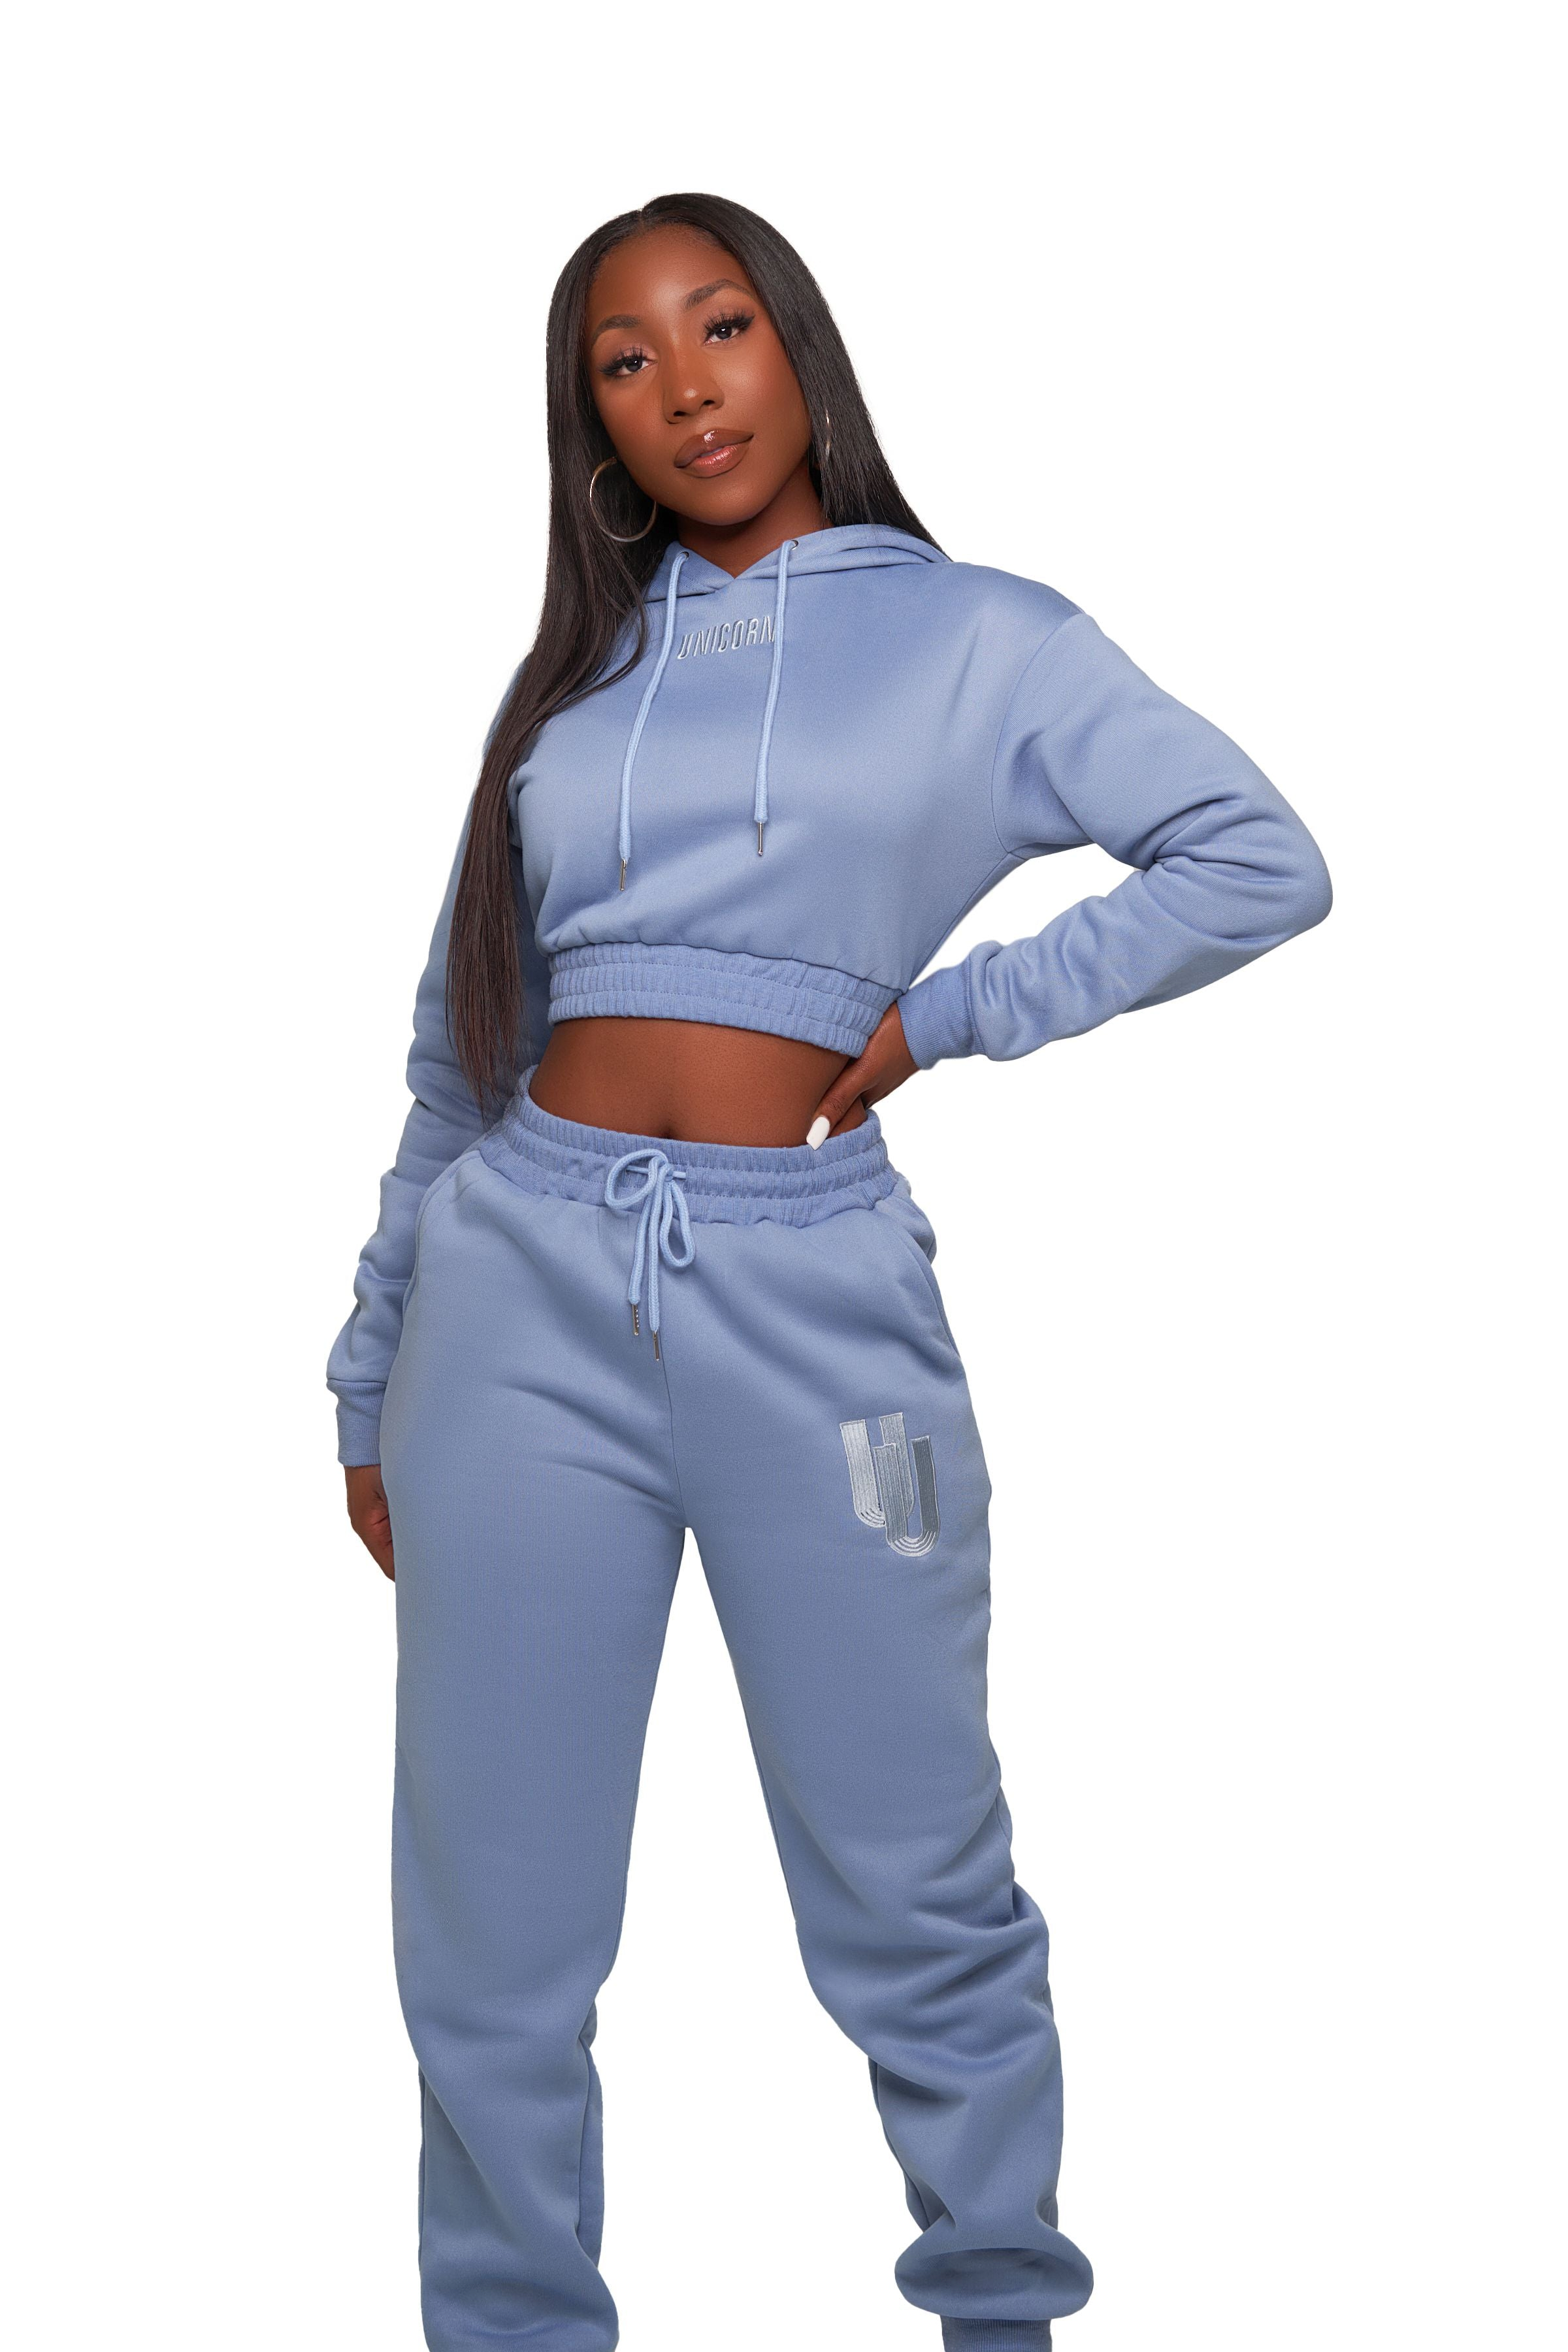 UNICORN Crop Hoodie Set (click here for all colors)